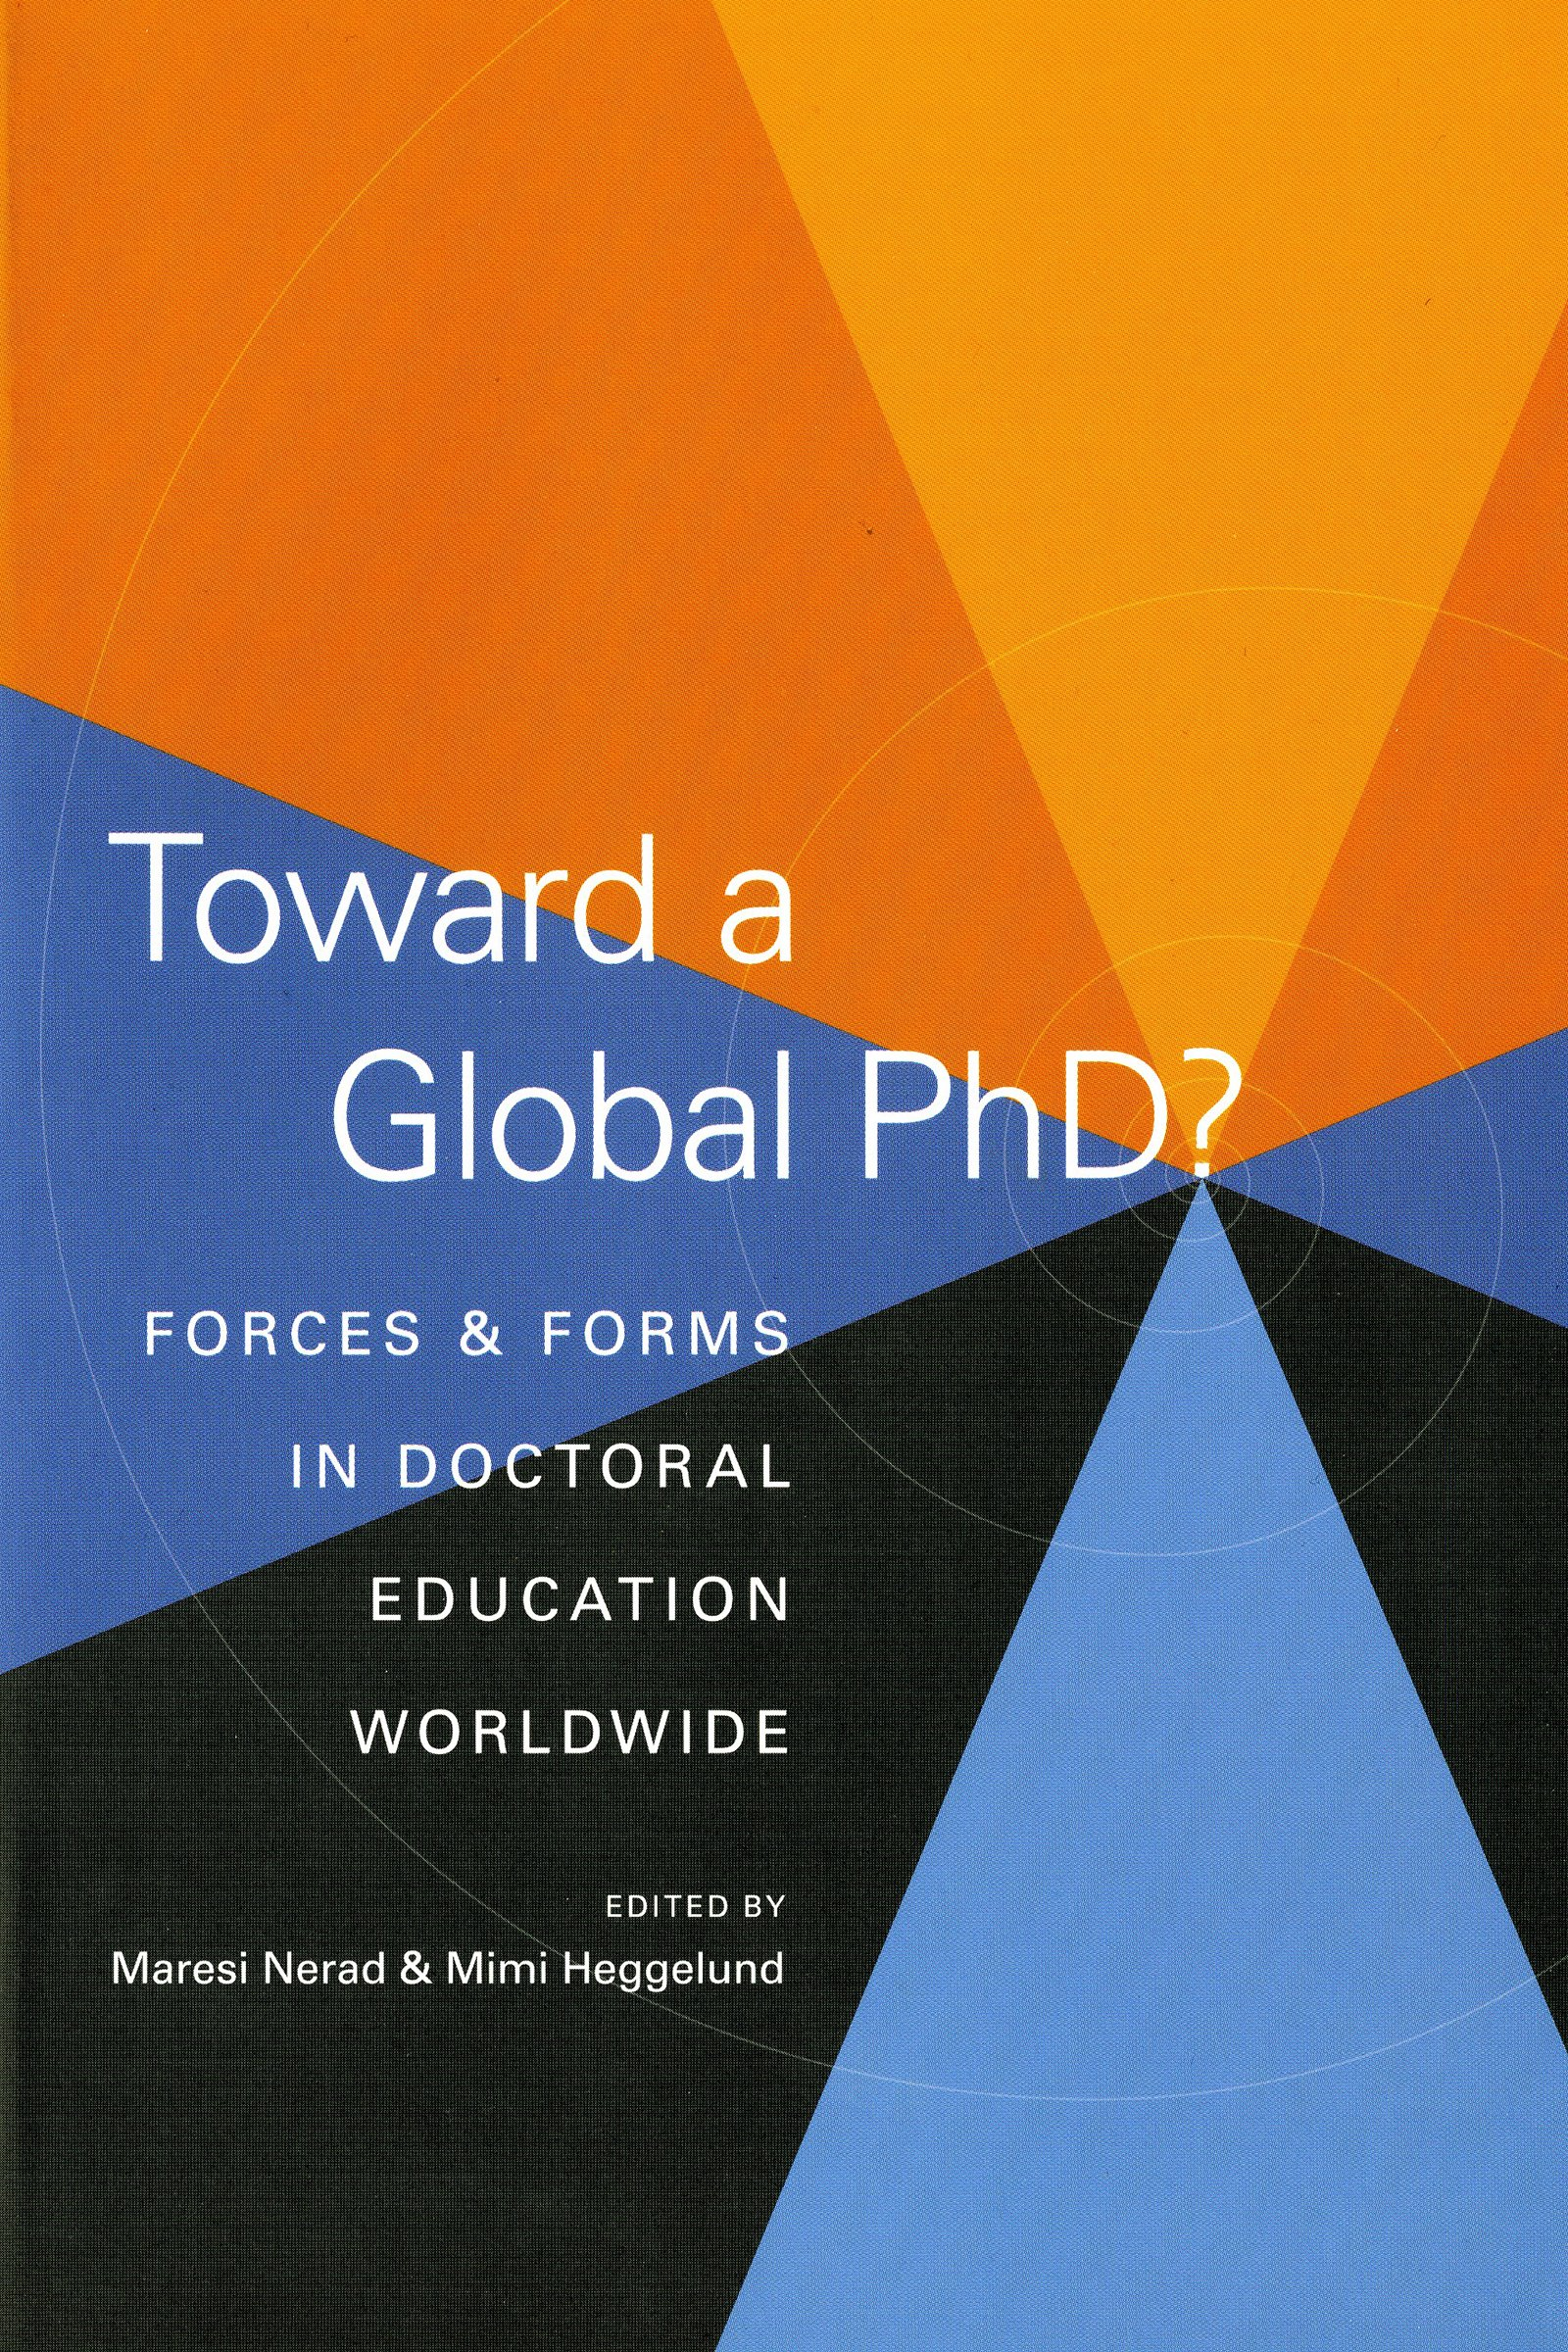 Read Online Toward a Global Phd?: Forces and Forms in Doctoral Education Worldwide pdf